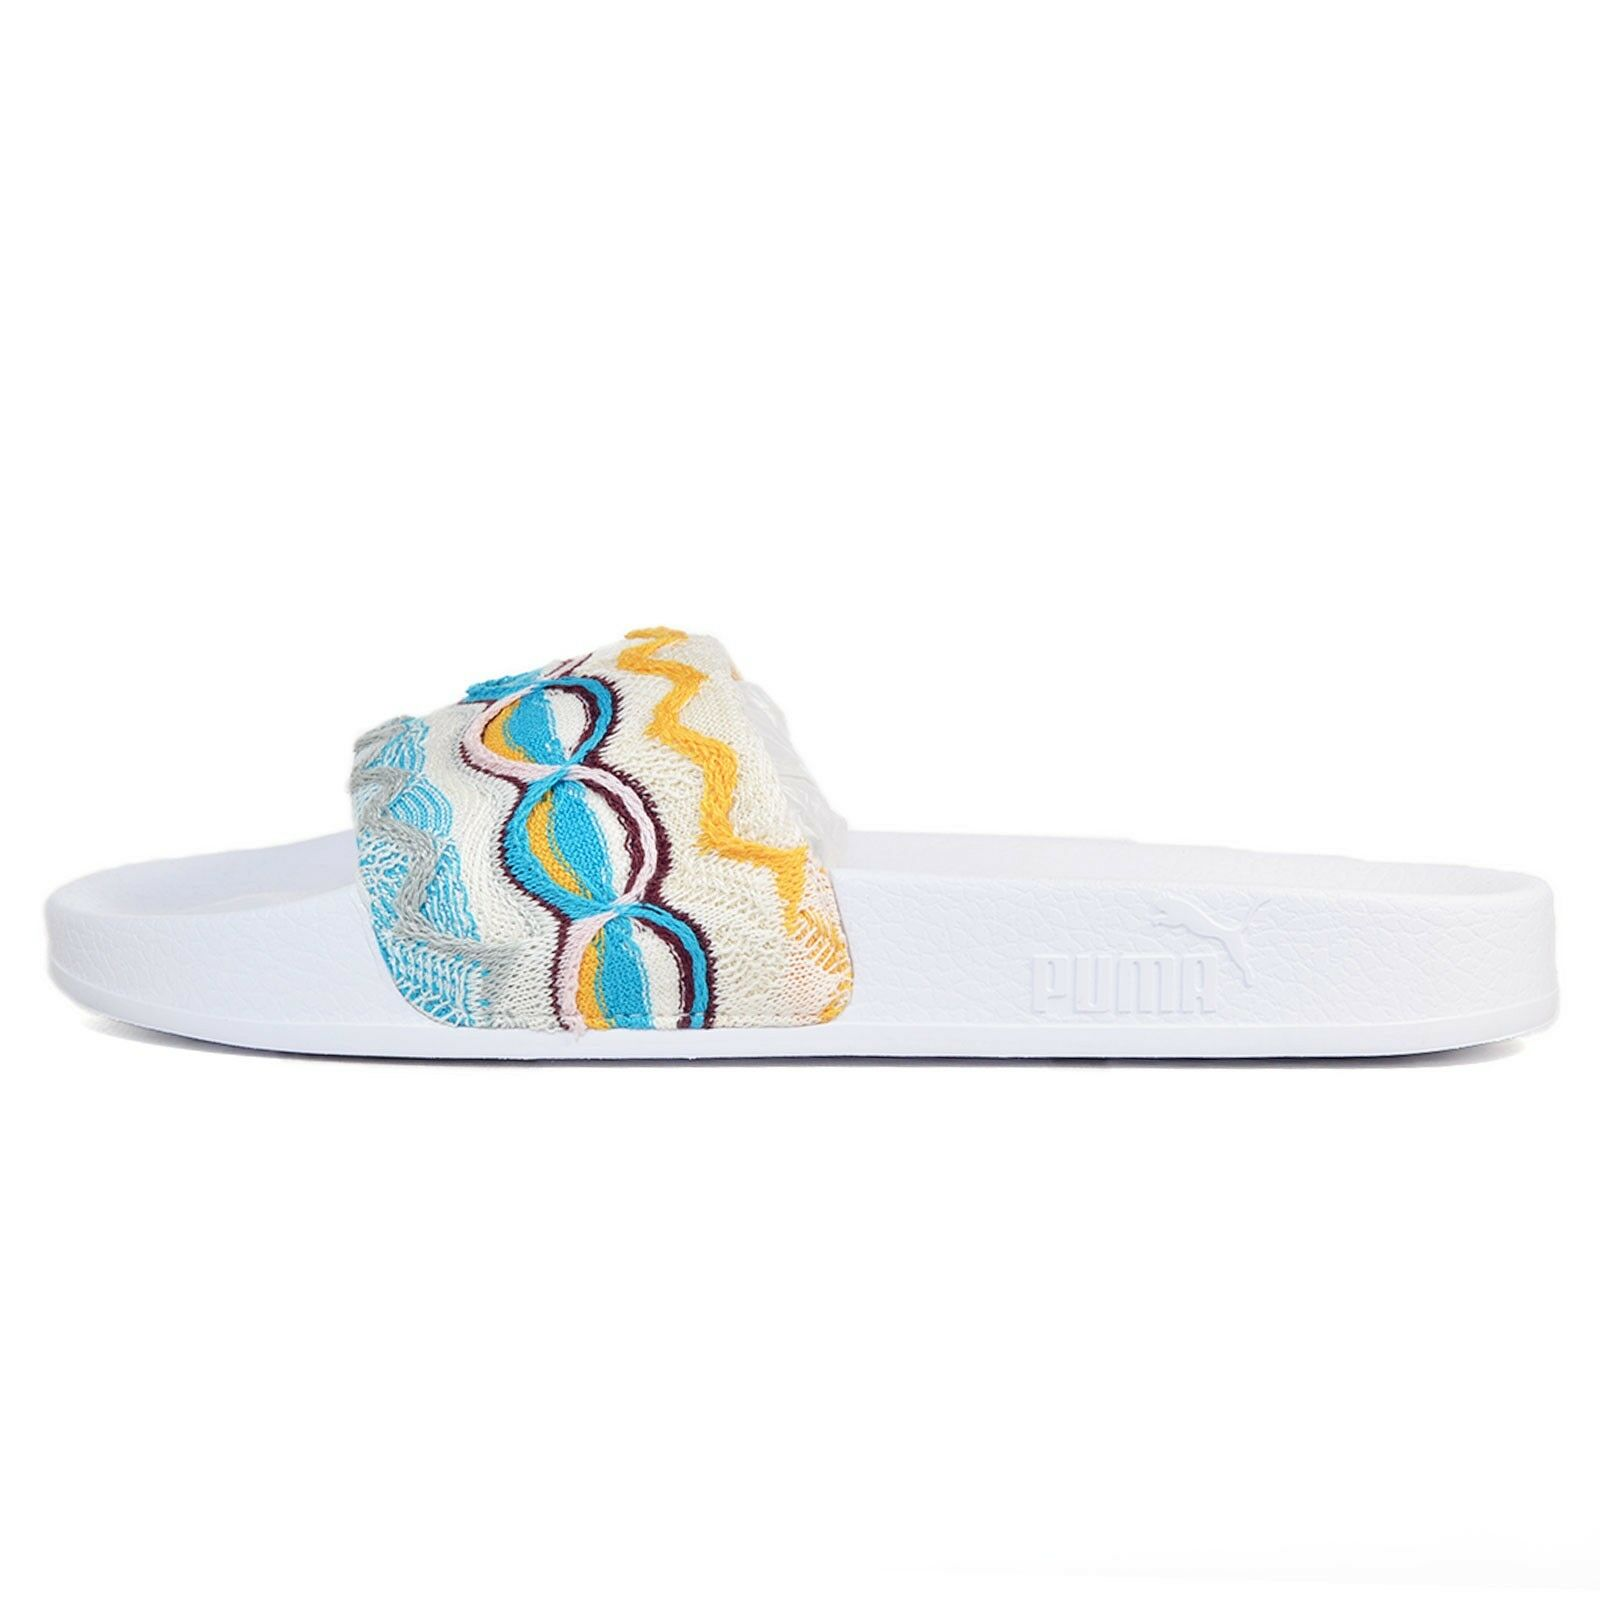 Puma leadcat COOGI Diapositive   368039 01 femmes blanches Taille 5 - 12